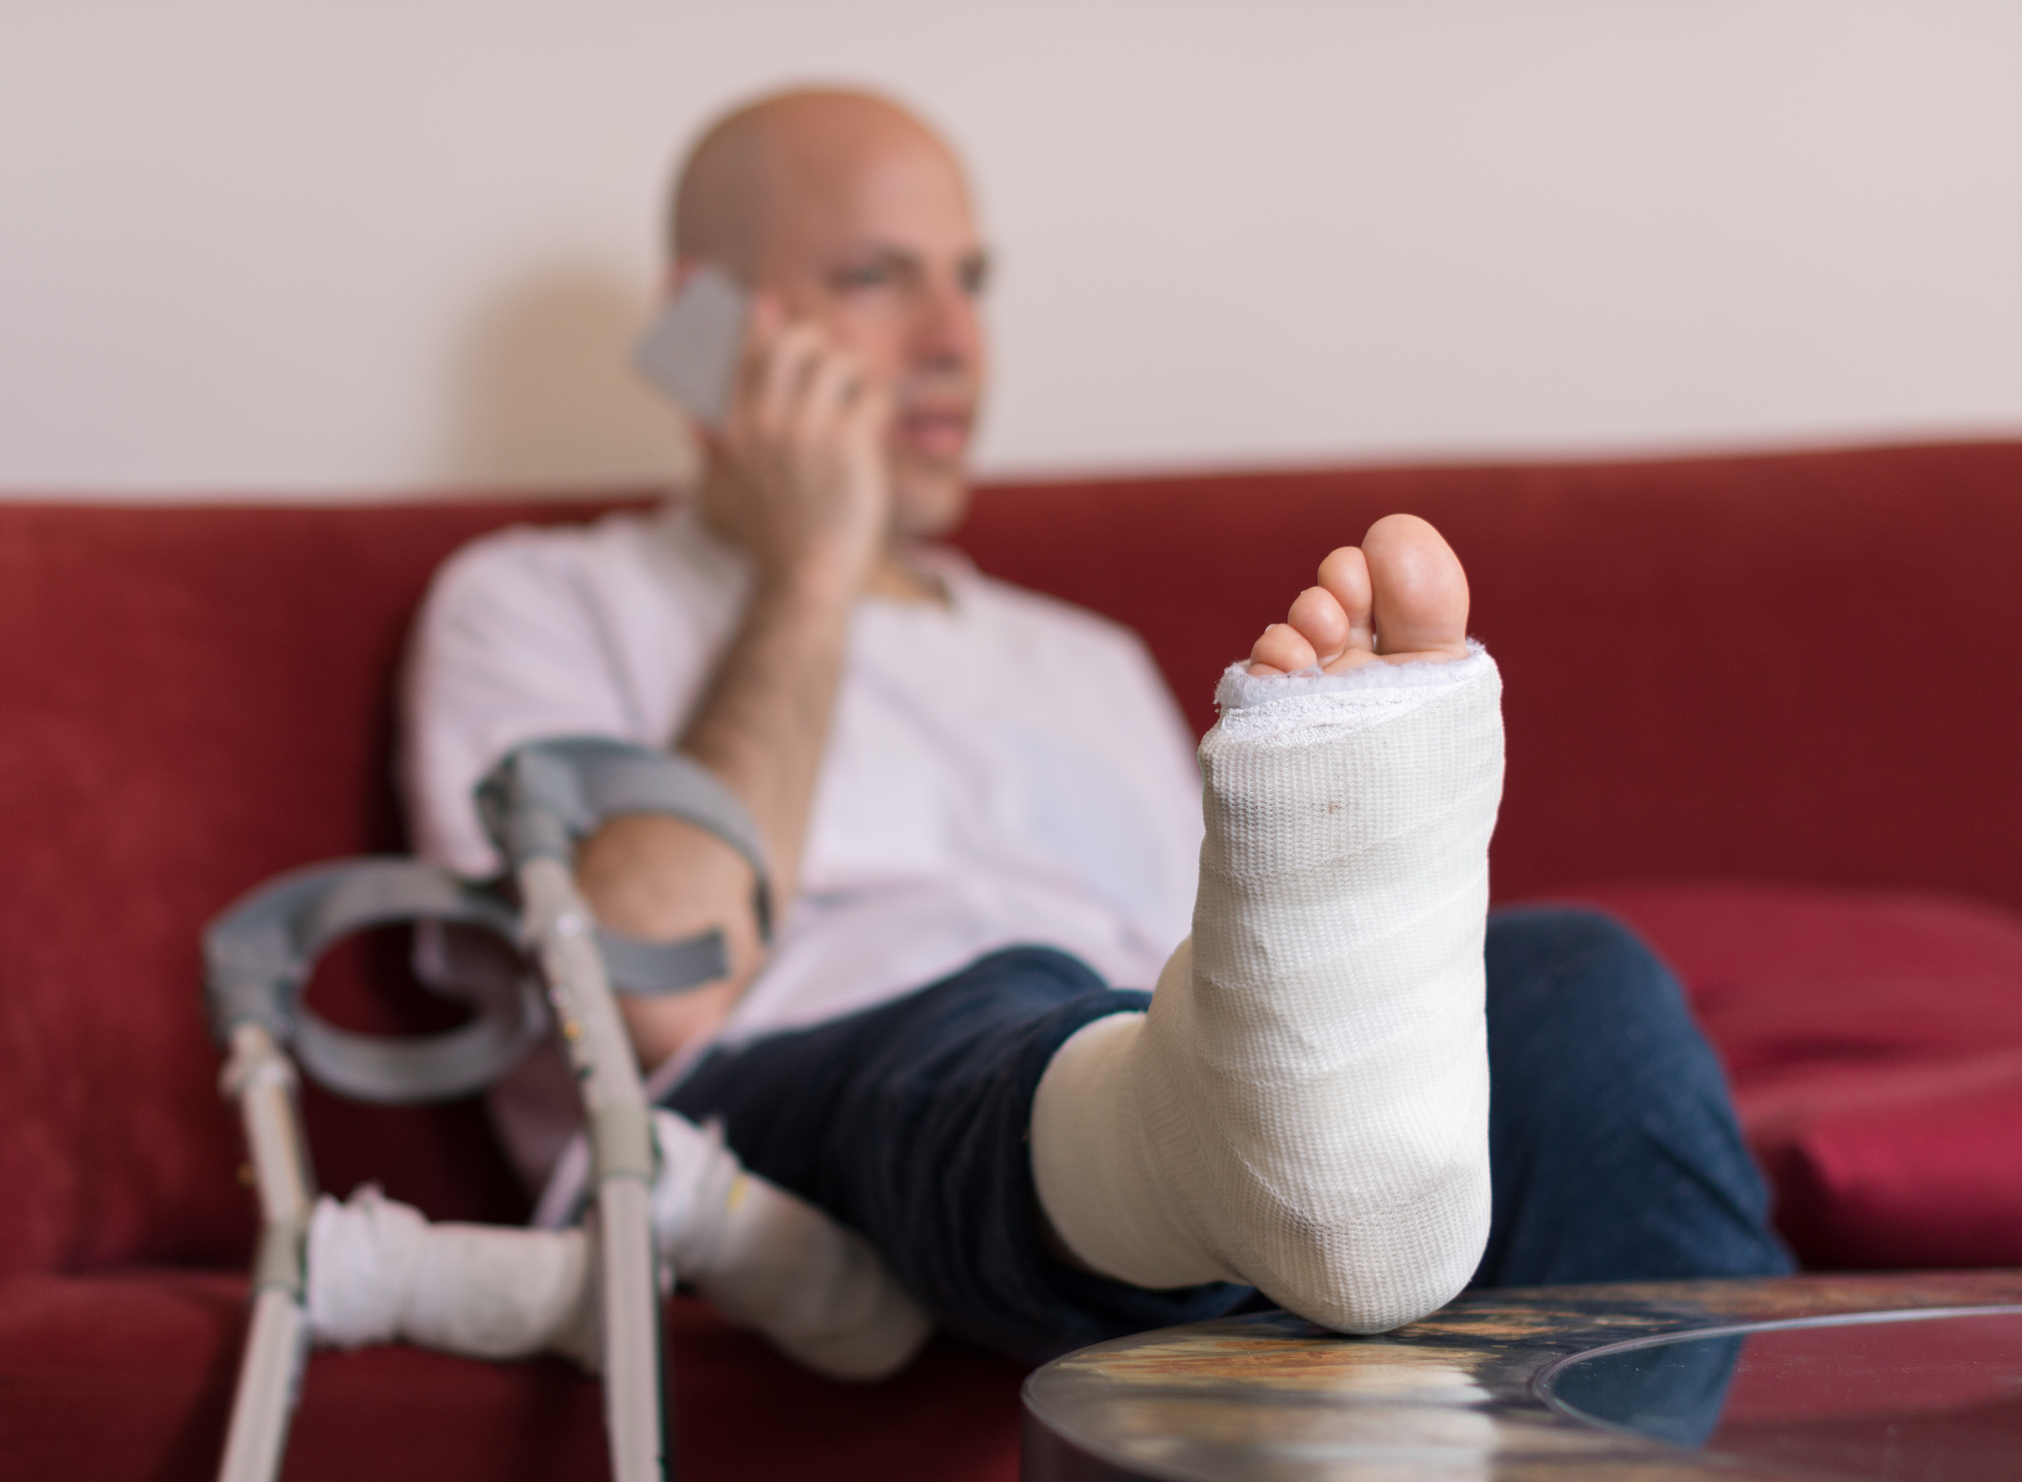 Injured male sitting on a couch and talking on a cell phone